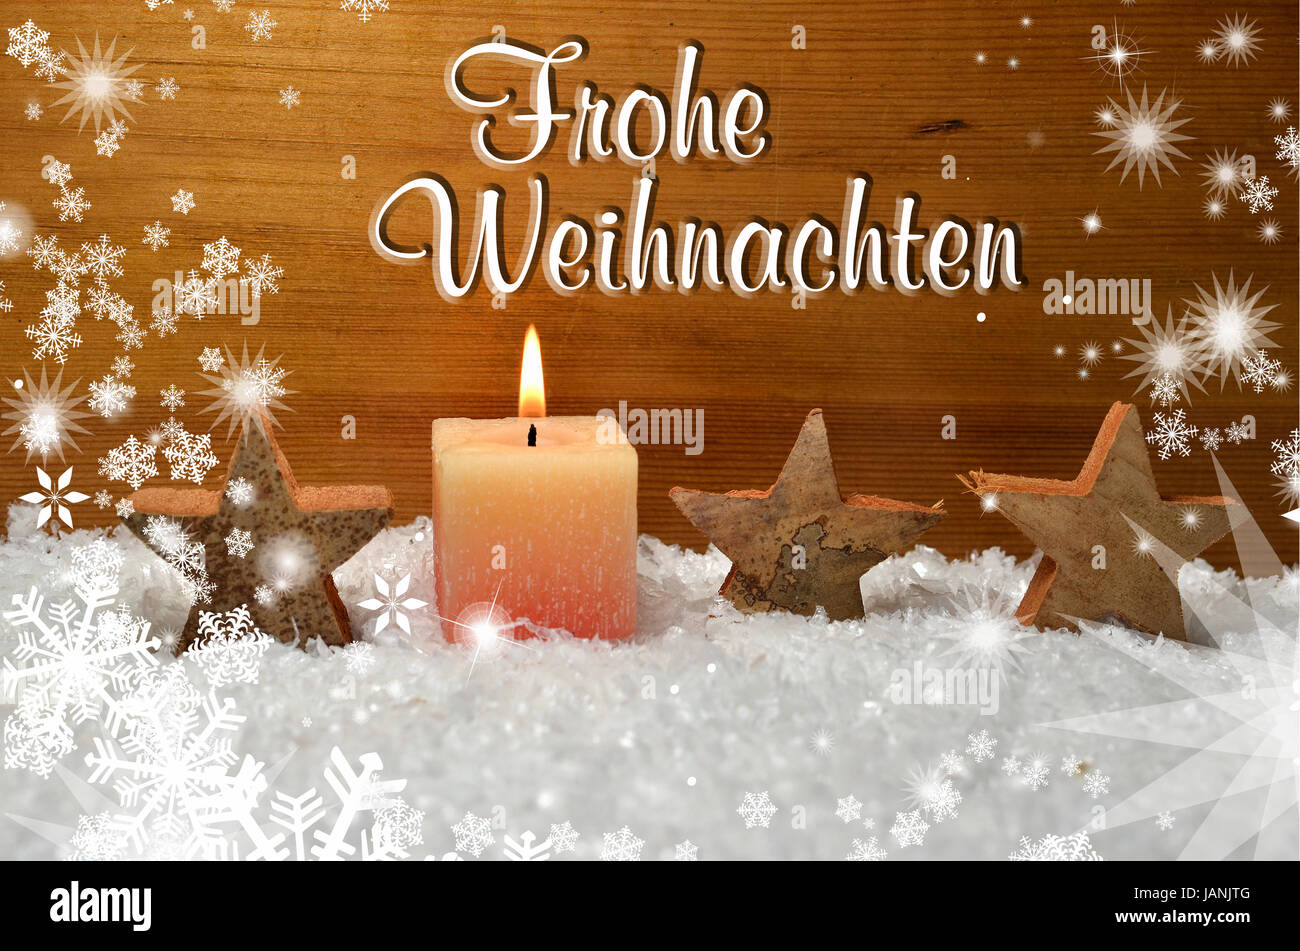 frohe weihnachten dekoration advent stock photo royalty free image 144305296 alamy. Black Bedroom Furniture Sets. Home Design Ideas